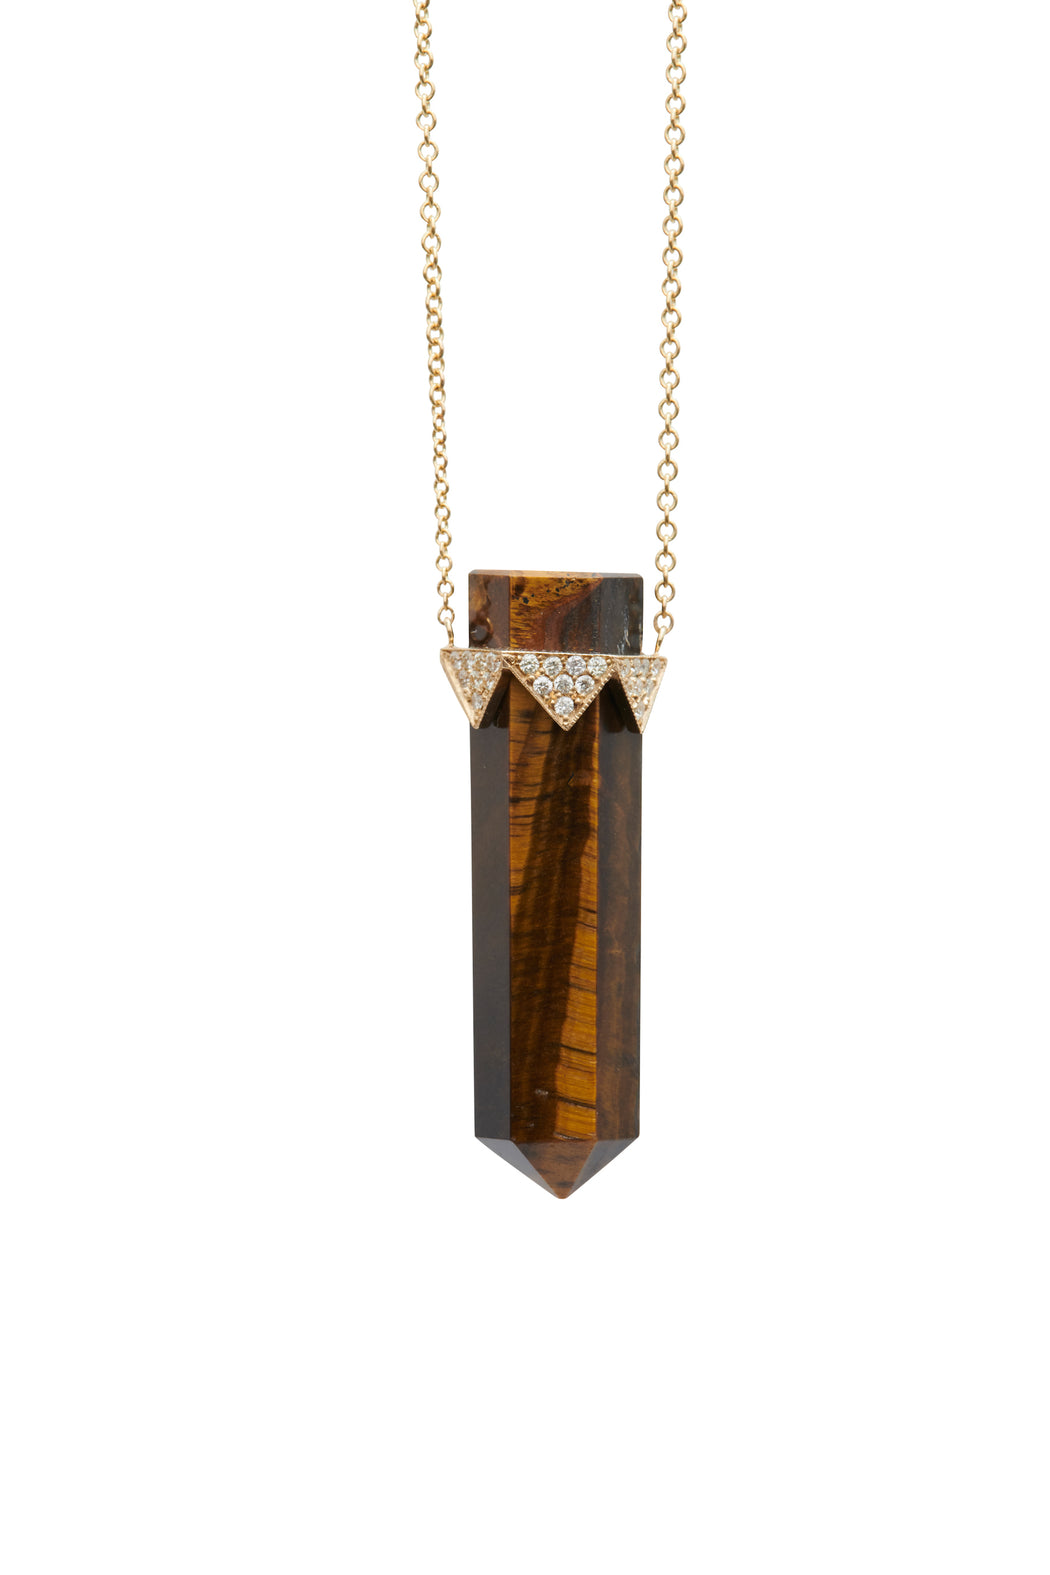 GOLD DIAMOND AND TIGERS EYE CRYSTAL PENDANT NECKLACE